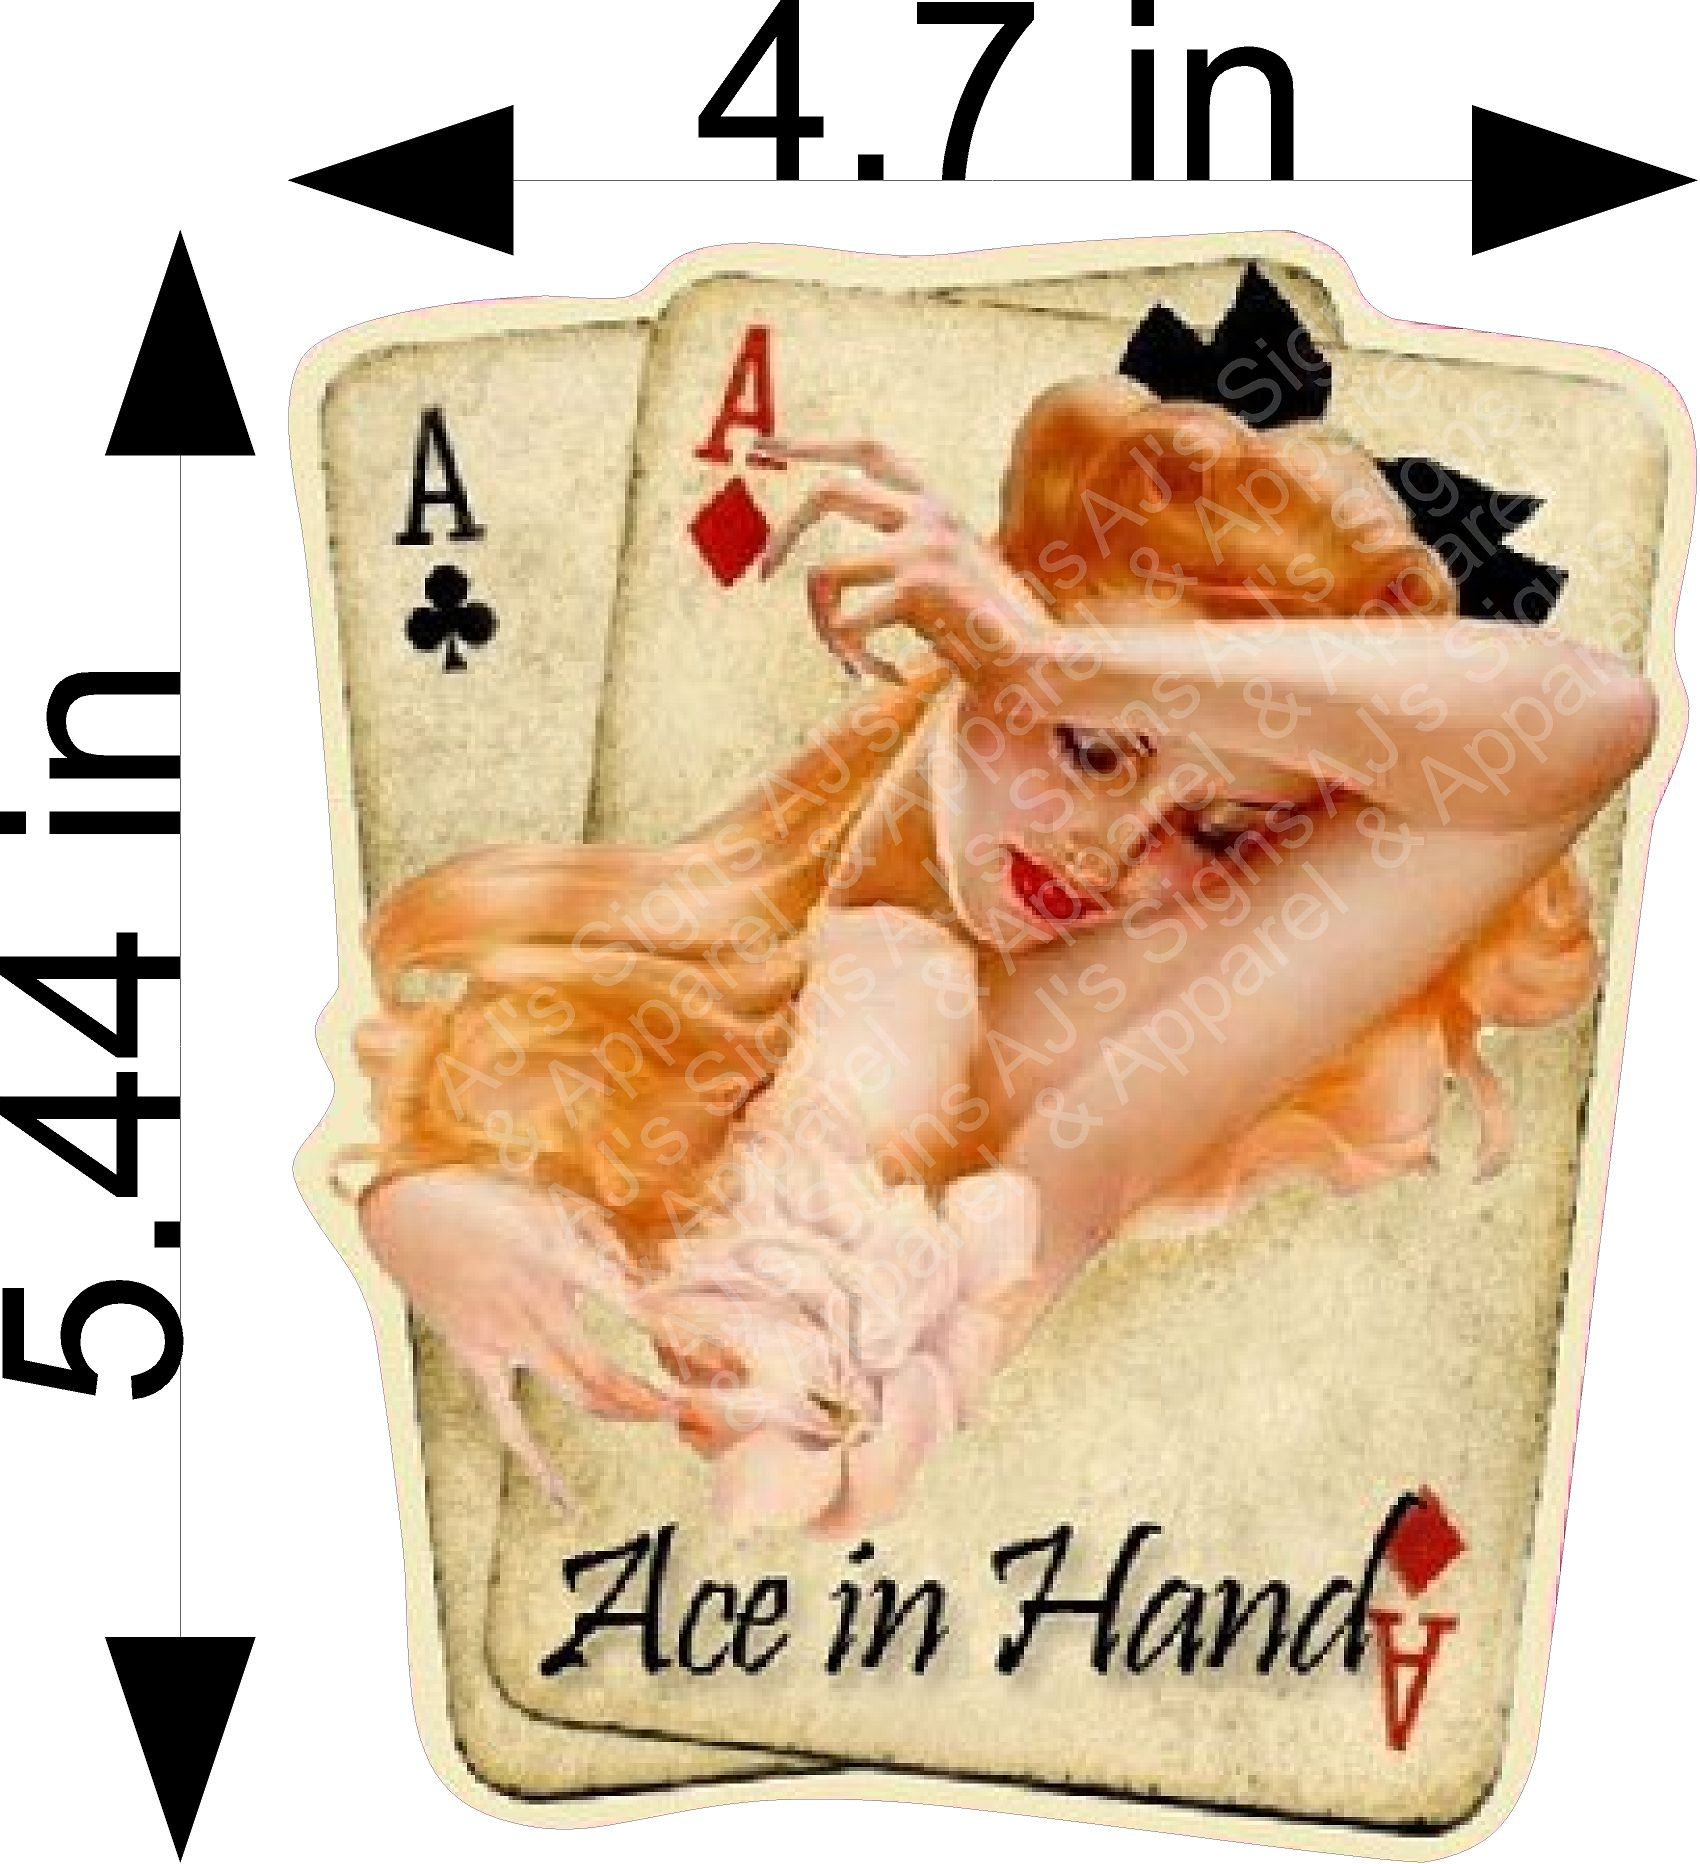 Aces In Hand Pin up Sticker